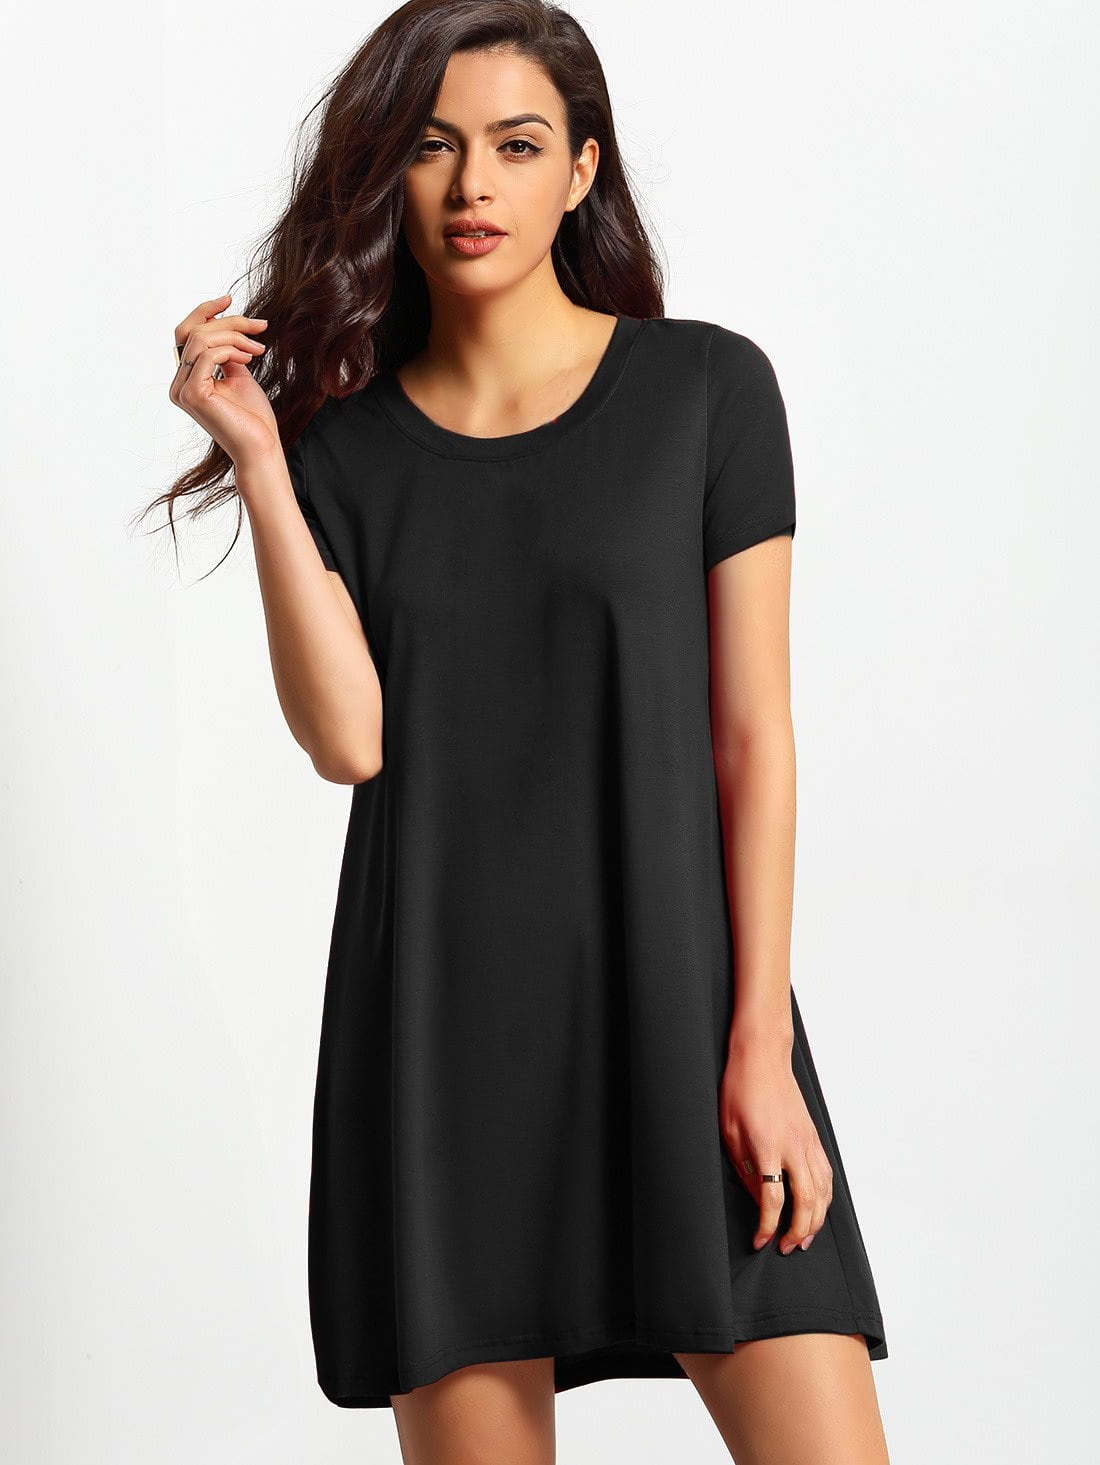 Short Sleeve Basic Shift Dress flounce short sleeve shift sleep dress